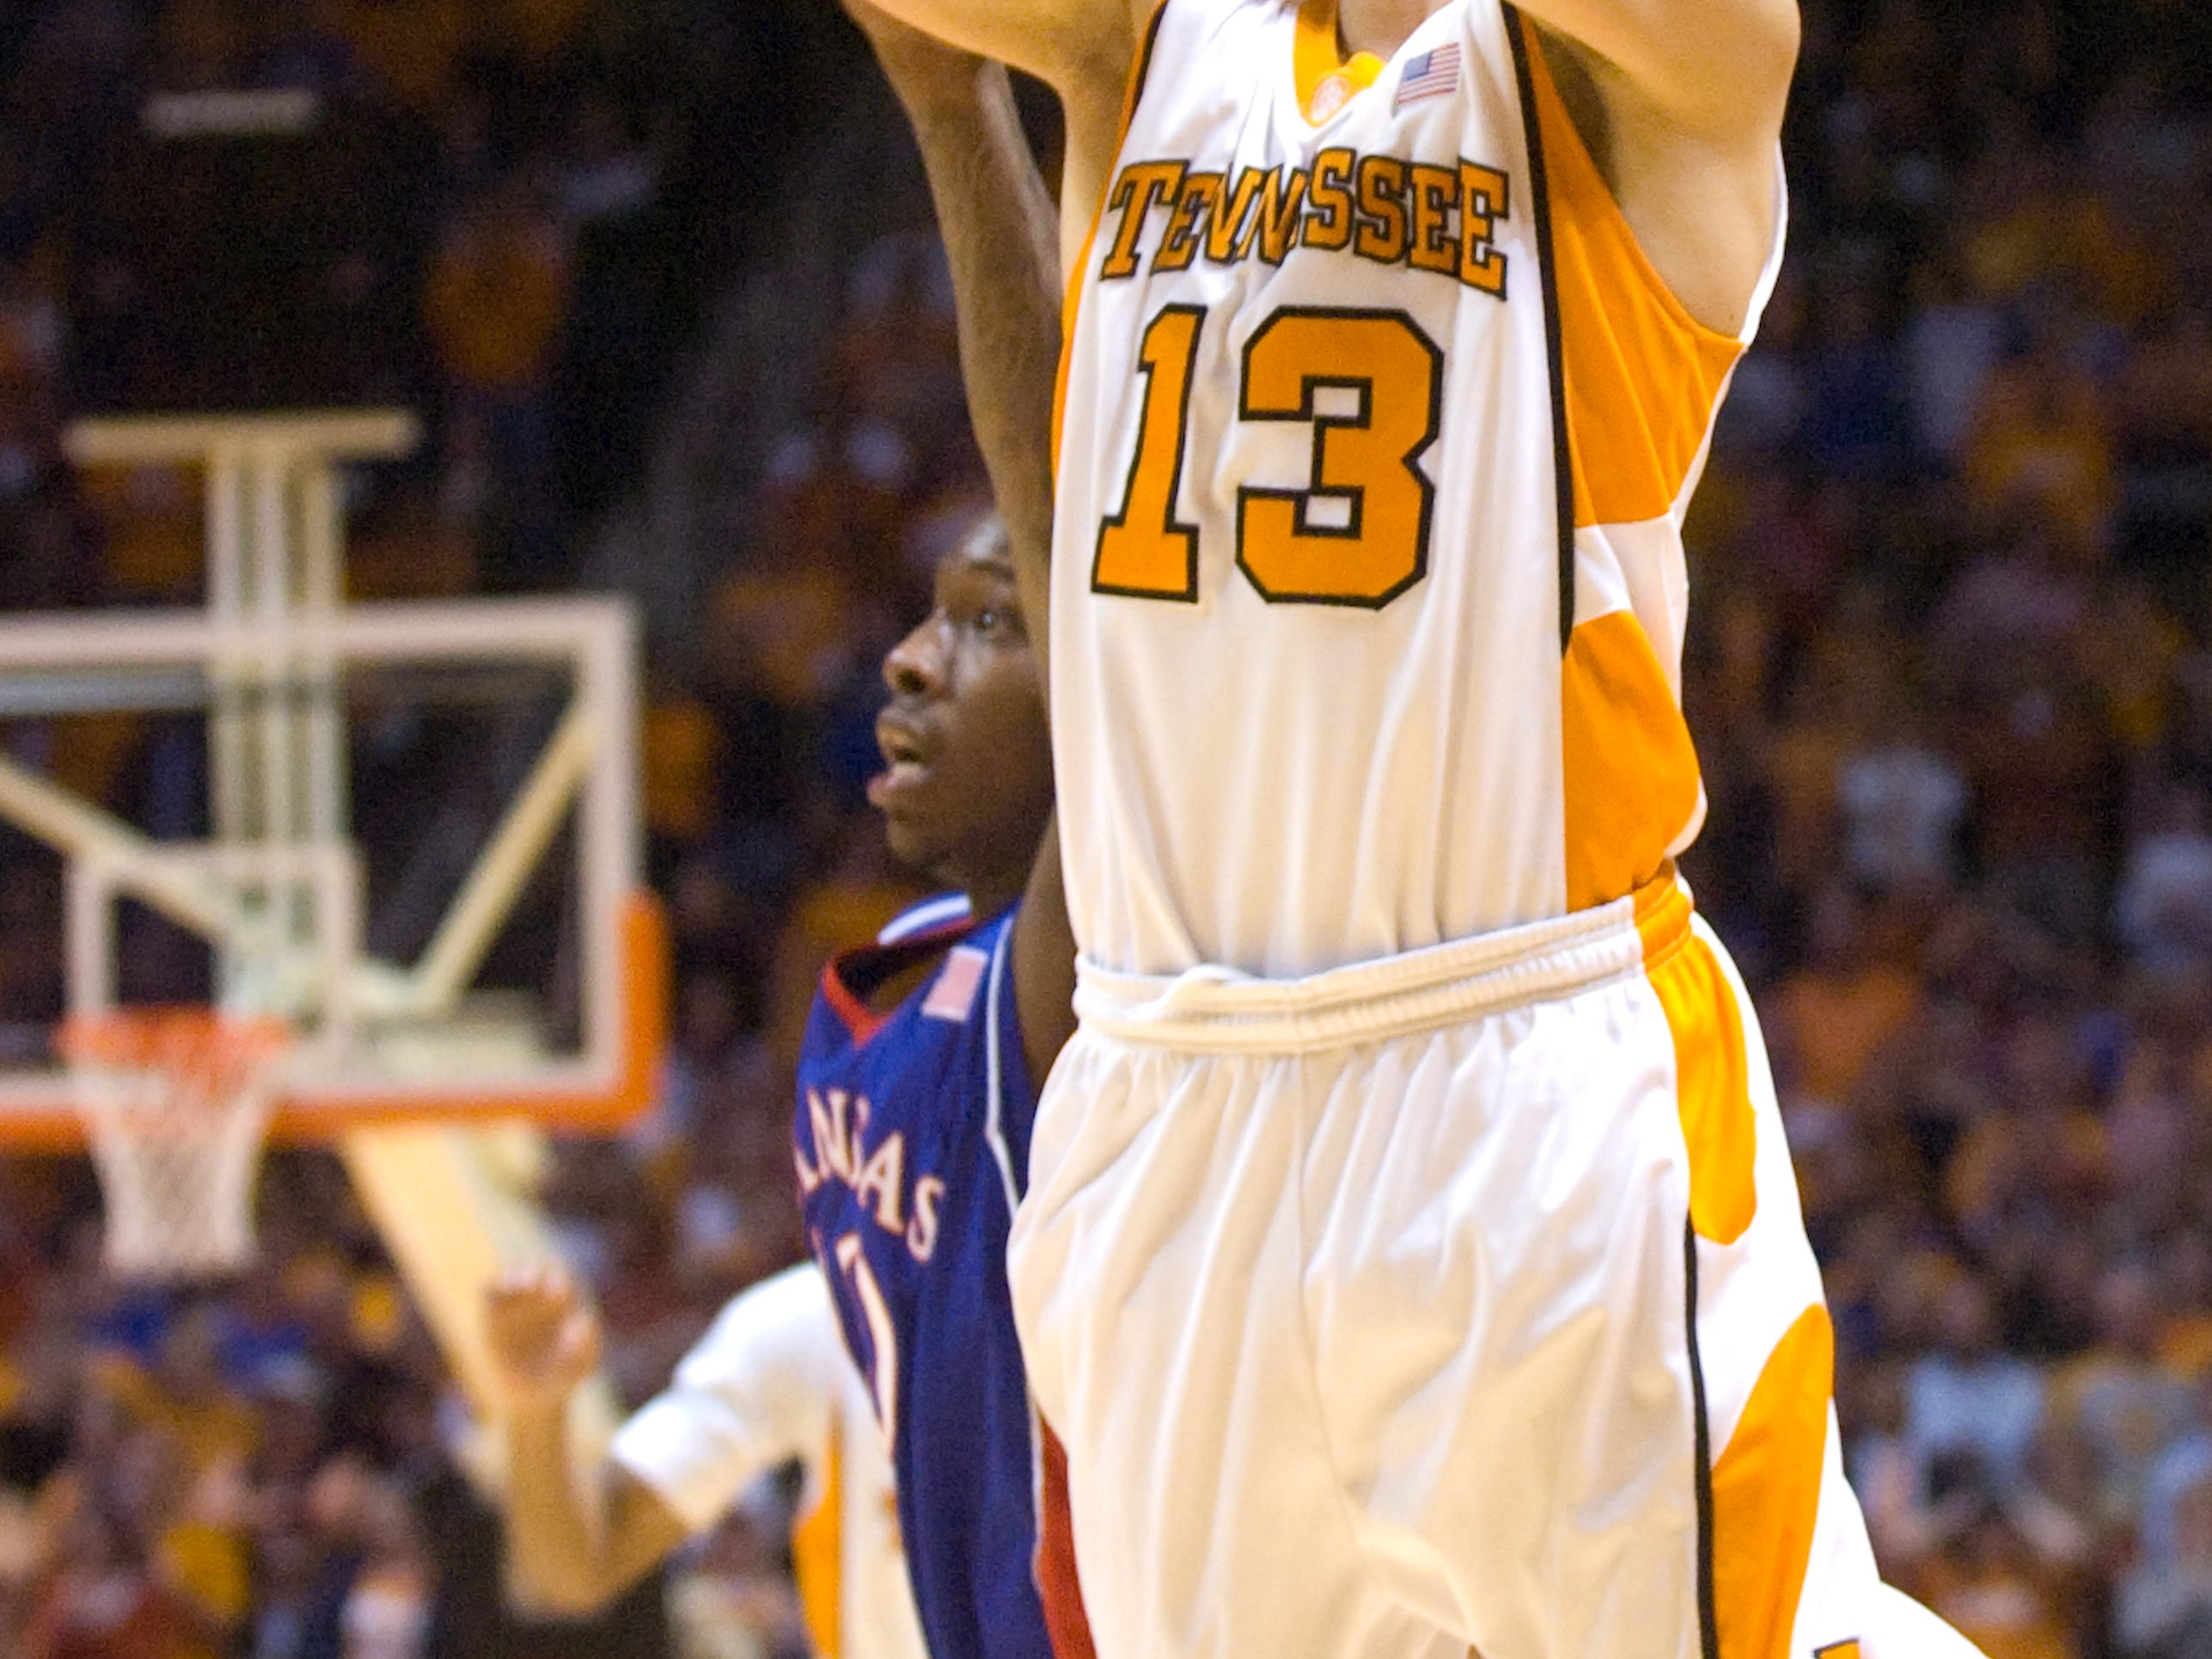 Skylar McBee makes a clutch 3-point shot in the final seconds of the game against Kansas. Tennessee upsets number one ranked  Kansas 76-68 at Thompson-Boling Arena  Sunday, Jan 10, 2010.